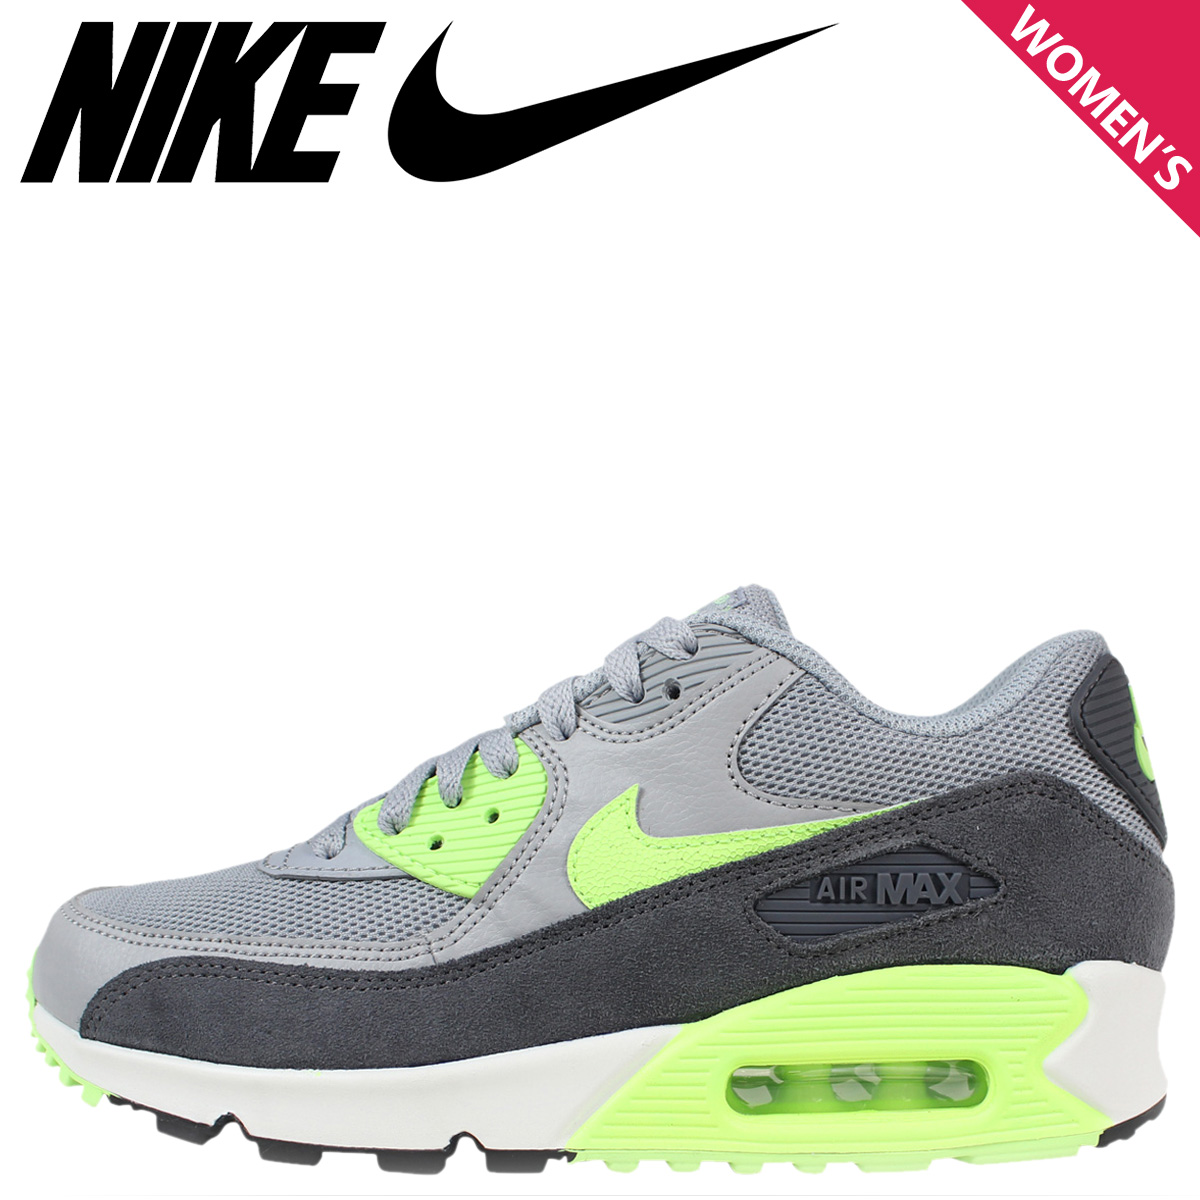 on sale 7208a 496db Nike NIKE Air Max sneakers Womens WMNS AIR MAX 90 ESSENTIAL Air Max 90  essential 616730 ...